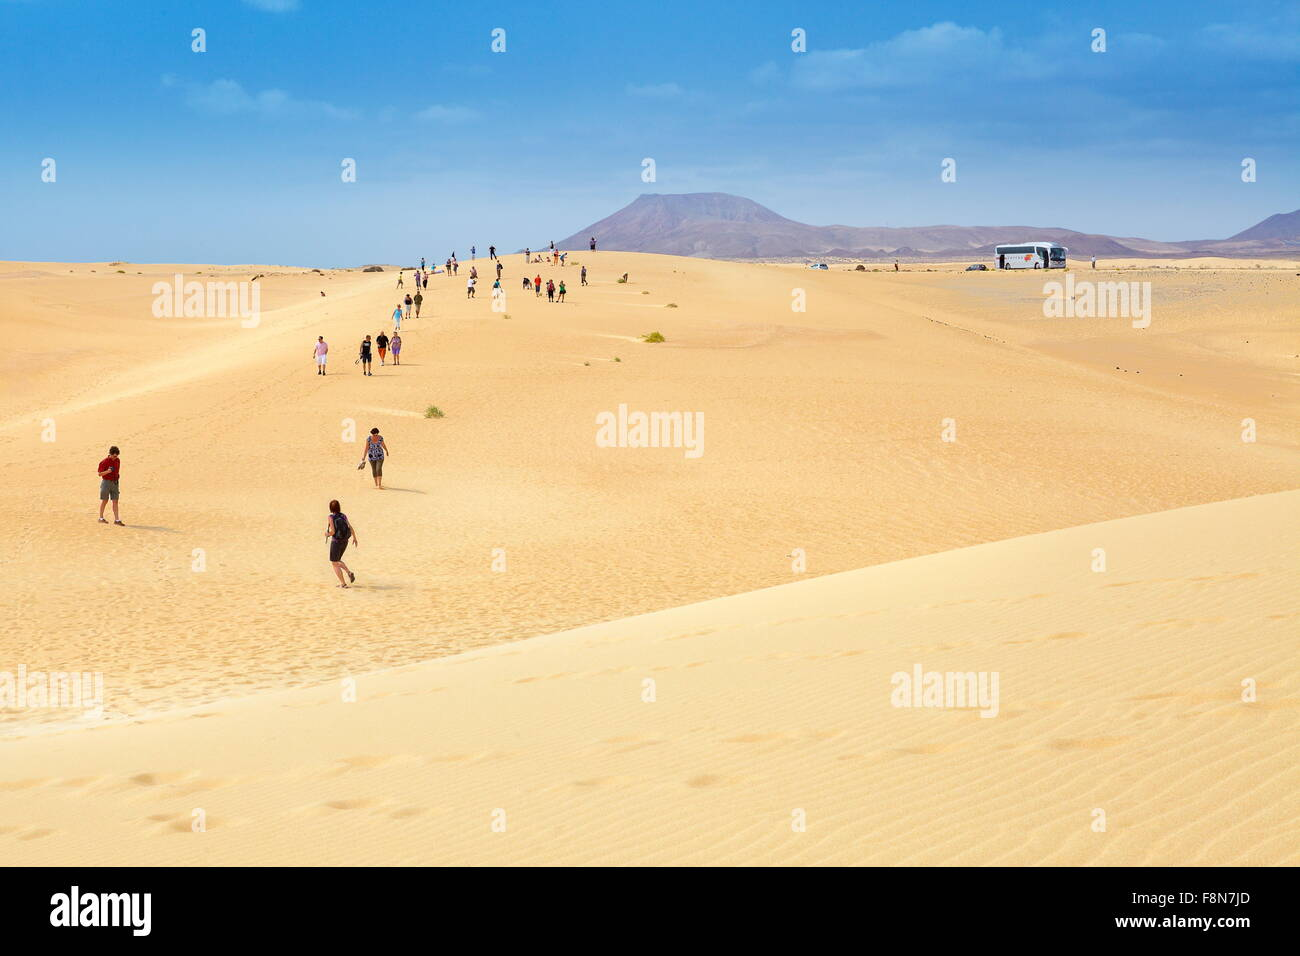 Fuerteventura Island, tourists walking on sand dunes in Parque Natural de Corralejo, Spain, Canary Islands - Stock Image